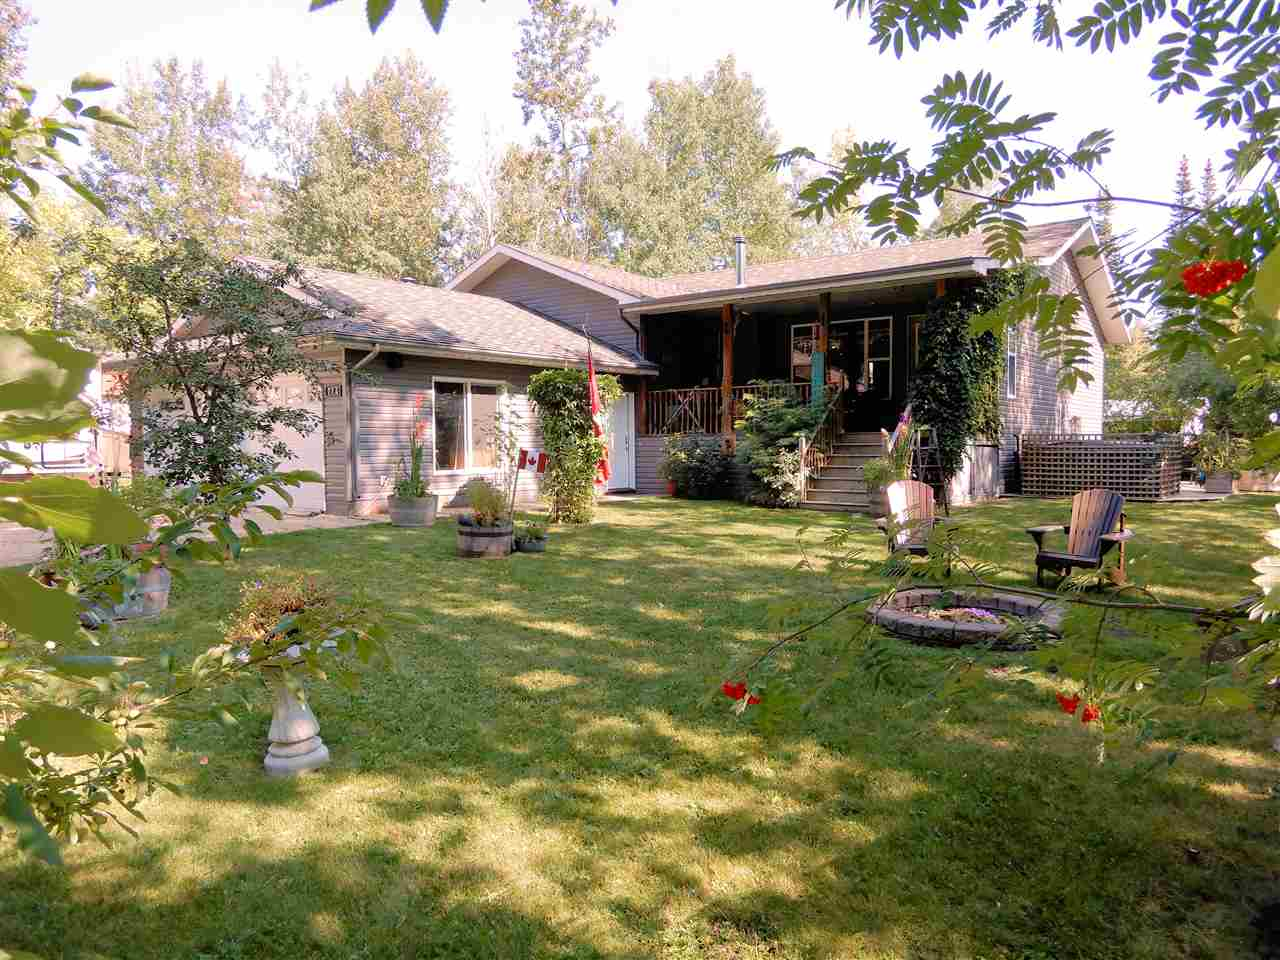 Why just buy a house when you can buy a lifestyle! Fantastic raised bungalow on extra large lot in the Village of Ross Haven. House features 4 bedrooms, 3 baths, and a partially finished basement. This house is loaded with upgrades; open concept with a large kitchen meant for entertaining, main floor laundry, hand-scraped solid maple flooring, large covered veranda, River Rock wood burning fireplace, built-in vacuum, in-slab heat in oversized double garage, a 6 person hot tub, custom wood shed, fire pit, cherry and apple trees, and so much more. 1 minute from your sandy beach, dock with a spot for your boat. Streets are assigned a private beach and lake access, The Summer Village of Ross Haven is a friendly, tight knit community where everyone knows everyone. Located a short 30 minutes west of Spruce Grove and an easy commute to Edmonton.  Lac Ste Anne is a large lake known for its summer and winter recreation and fishing. Come discover what your new lifestyle could be!!